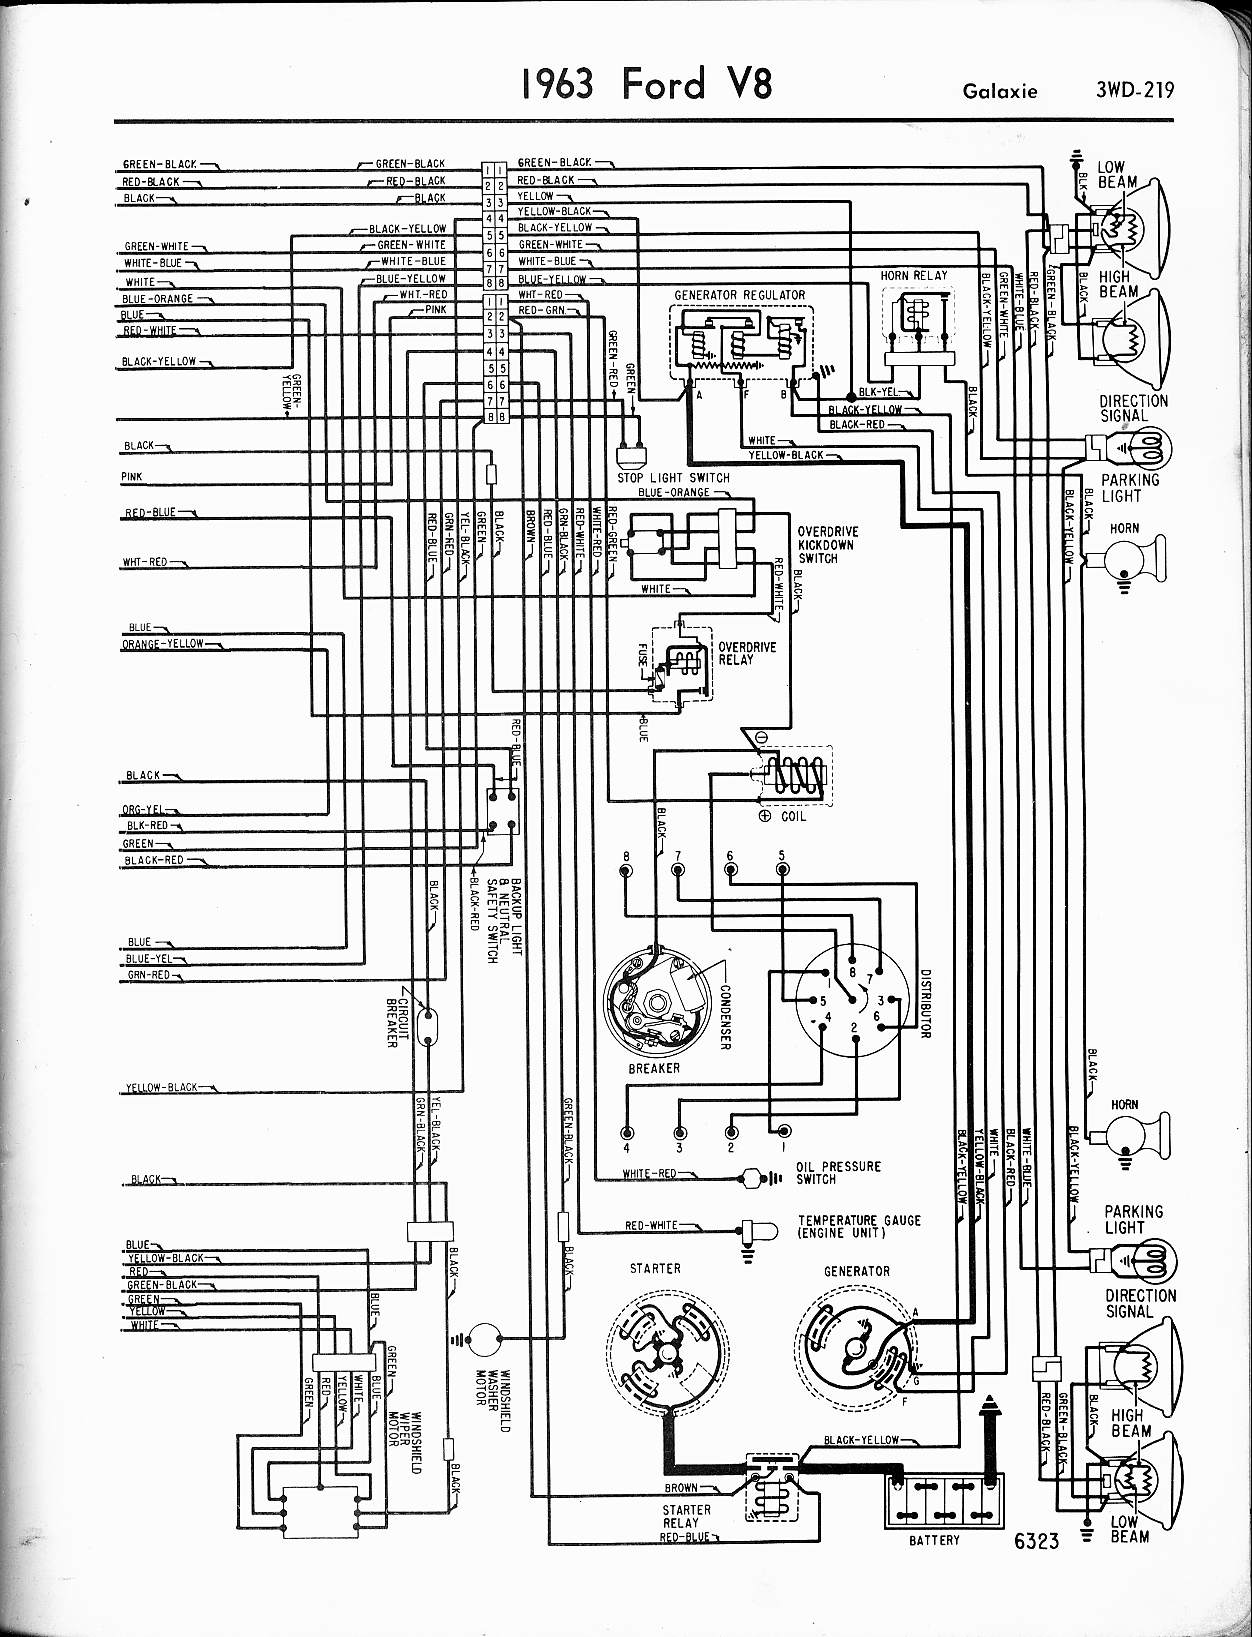 Fuse Box Diagram Ford Galaxie on 1963 Ford Galaxie Wiring Diagram